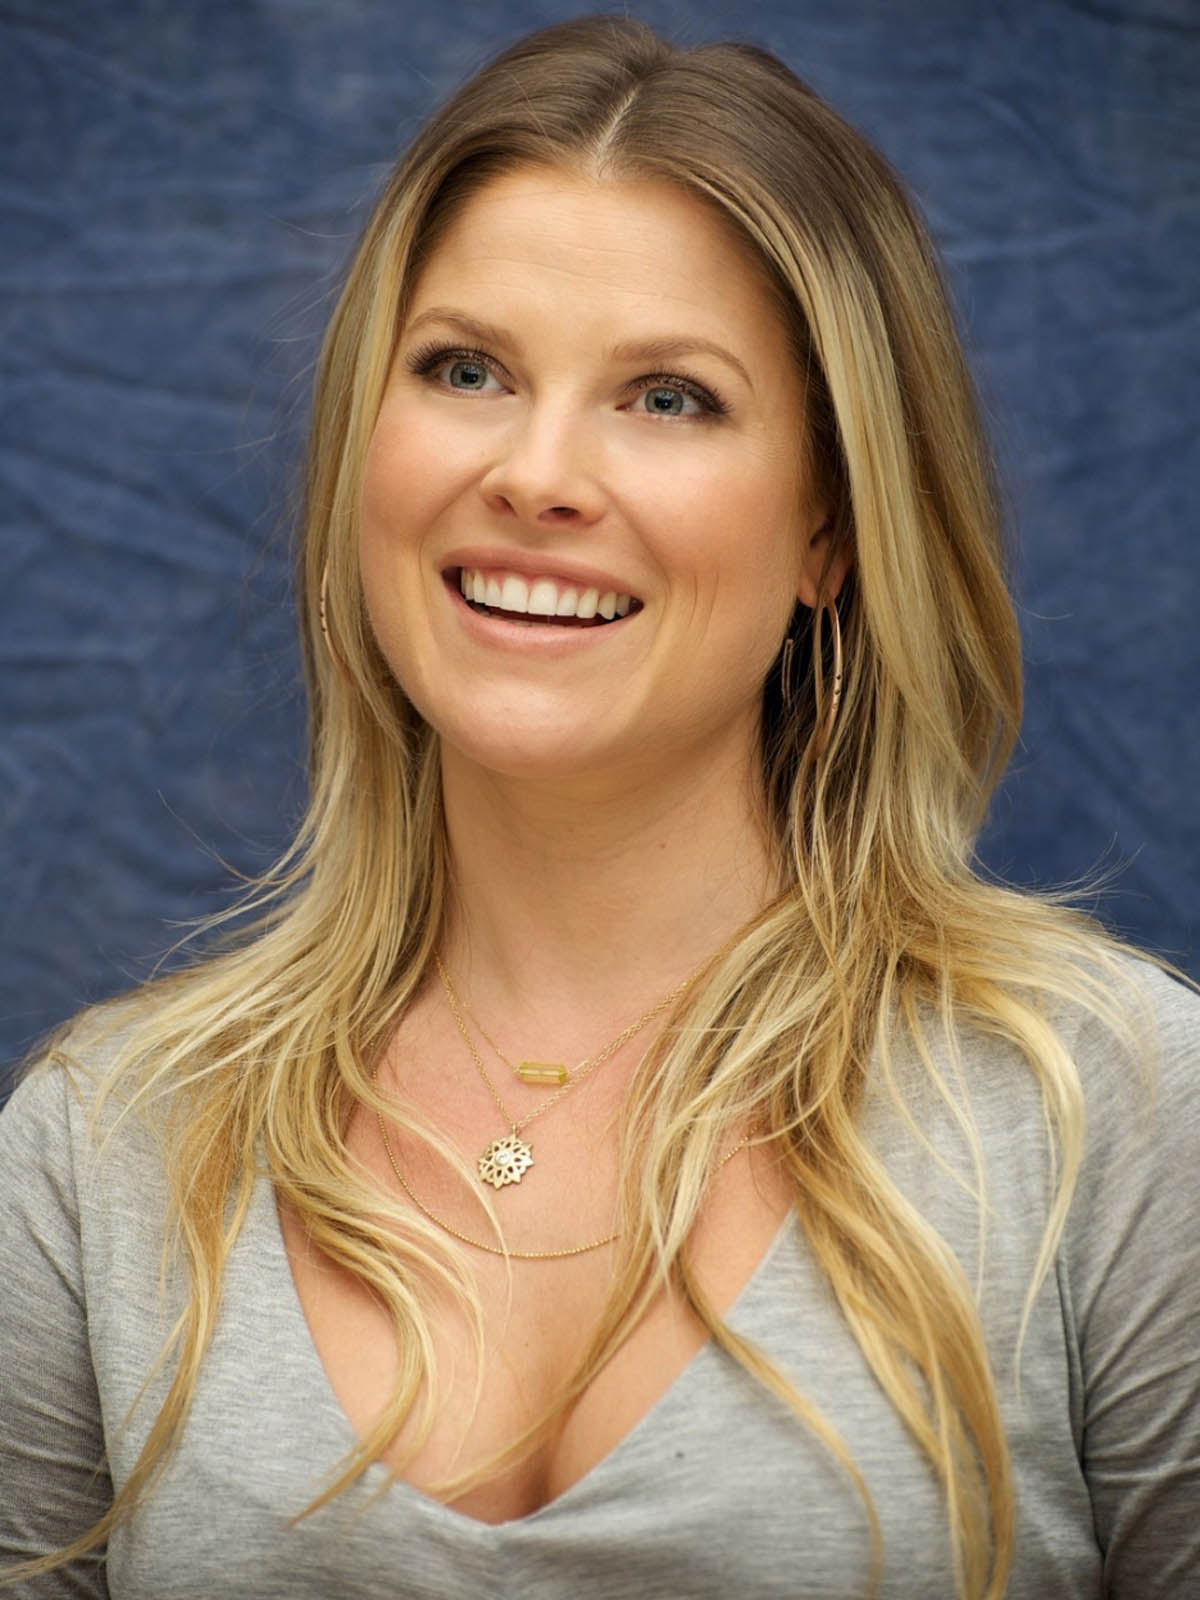 Michael Jackson Hd Wallpapers For Iphone 6 Ali Larter Wallpapers High Quality Download Free